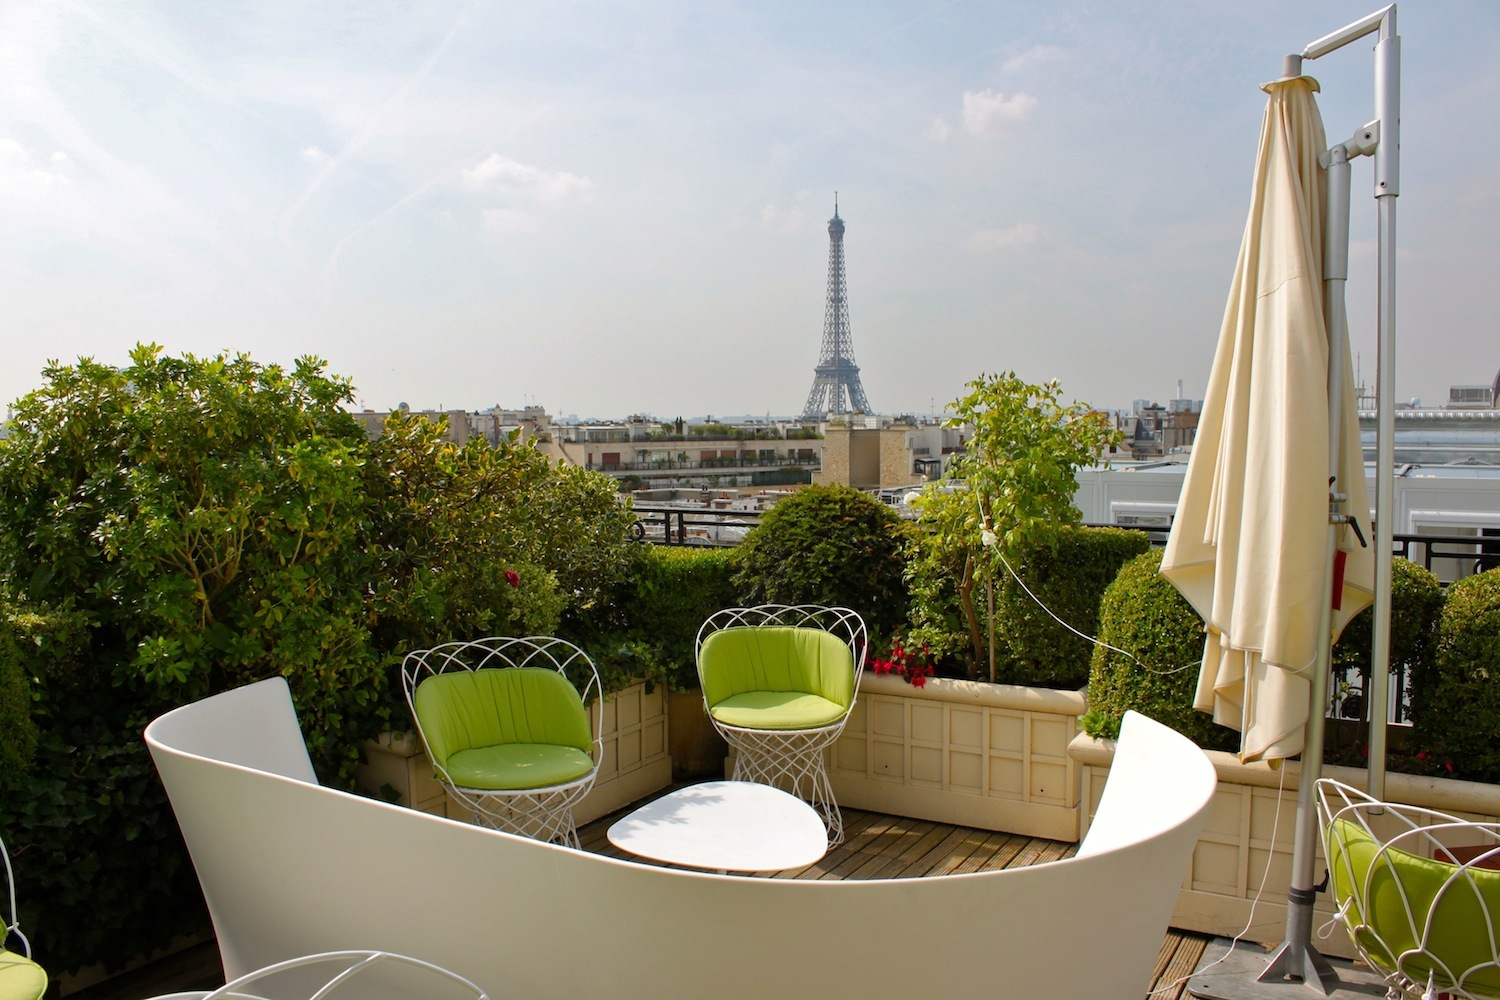 Toit Terrasse Restaurant Paris Rooftop Paris Les Bars Terrasses Du Moment